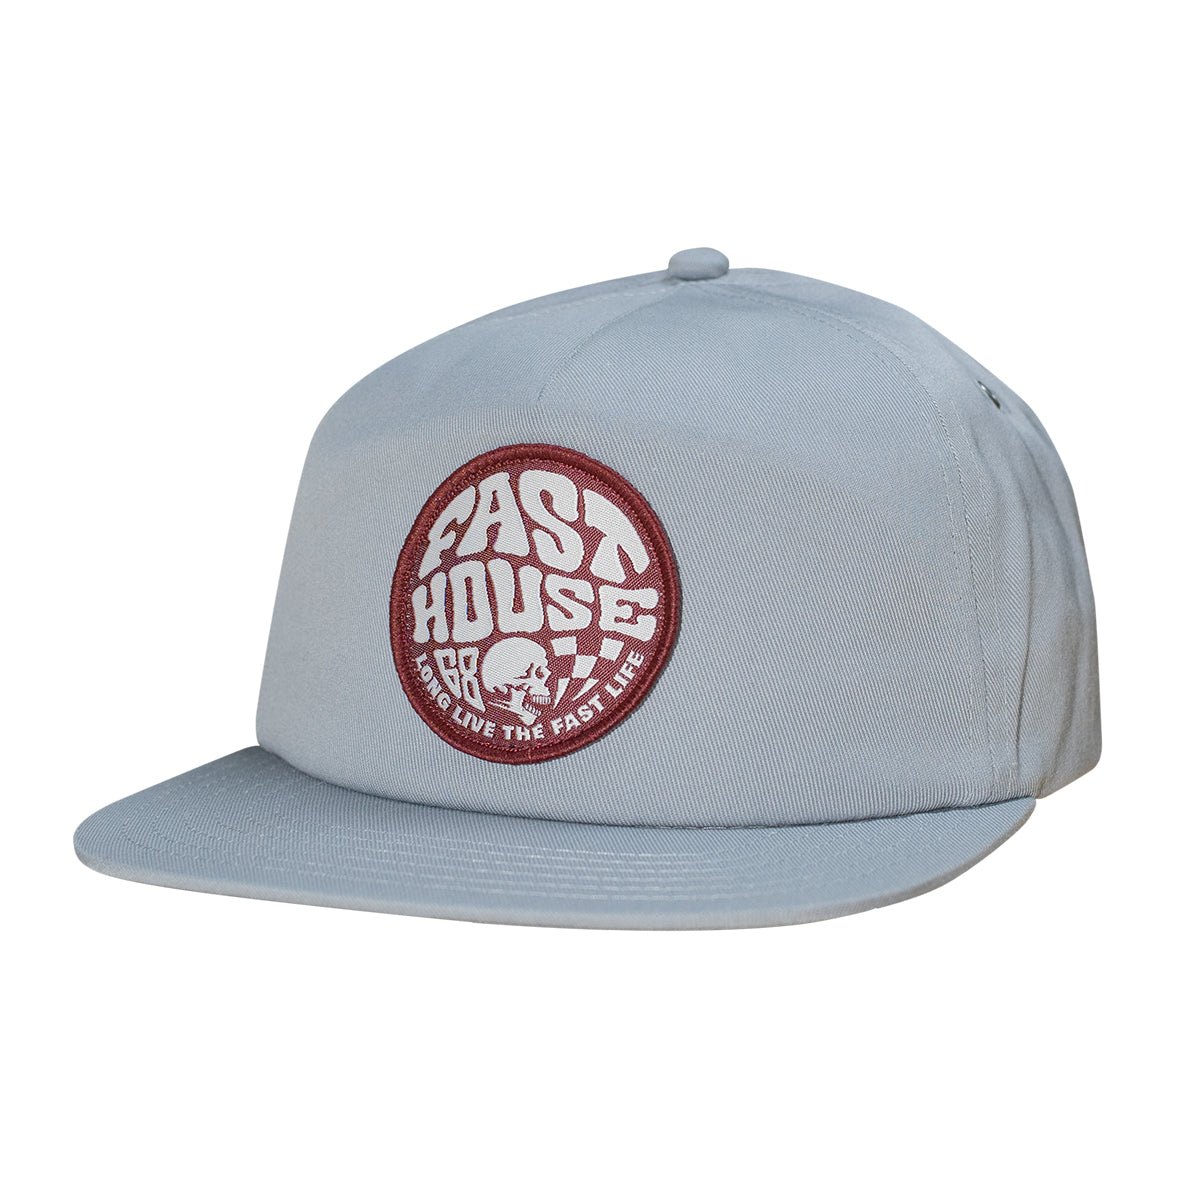 Fasthouse - Waxed Hat - Grey